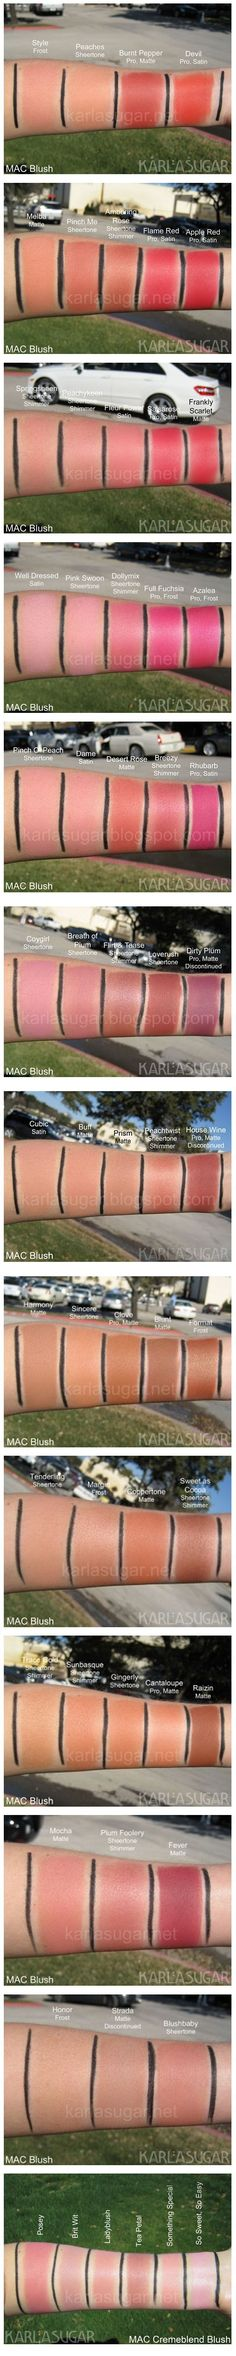 "Karla Sugar Blog: ""MAC Blush Recap"" - An Ultimate MAC Sheertone and Cremeblend Blush Swatch. See it before you buy it. AMAZING!"